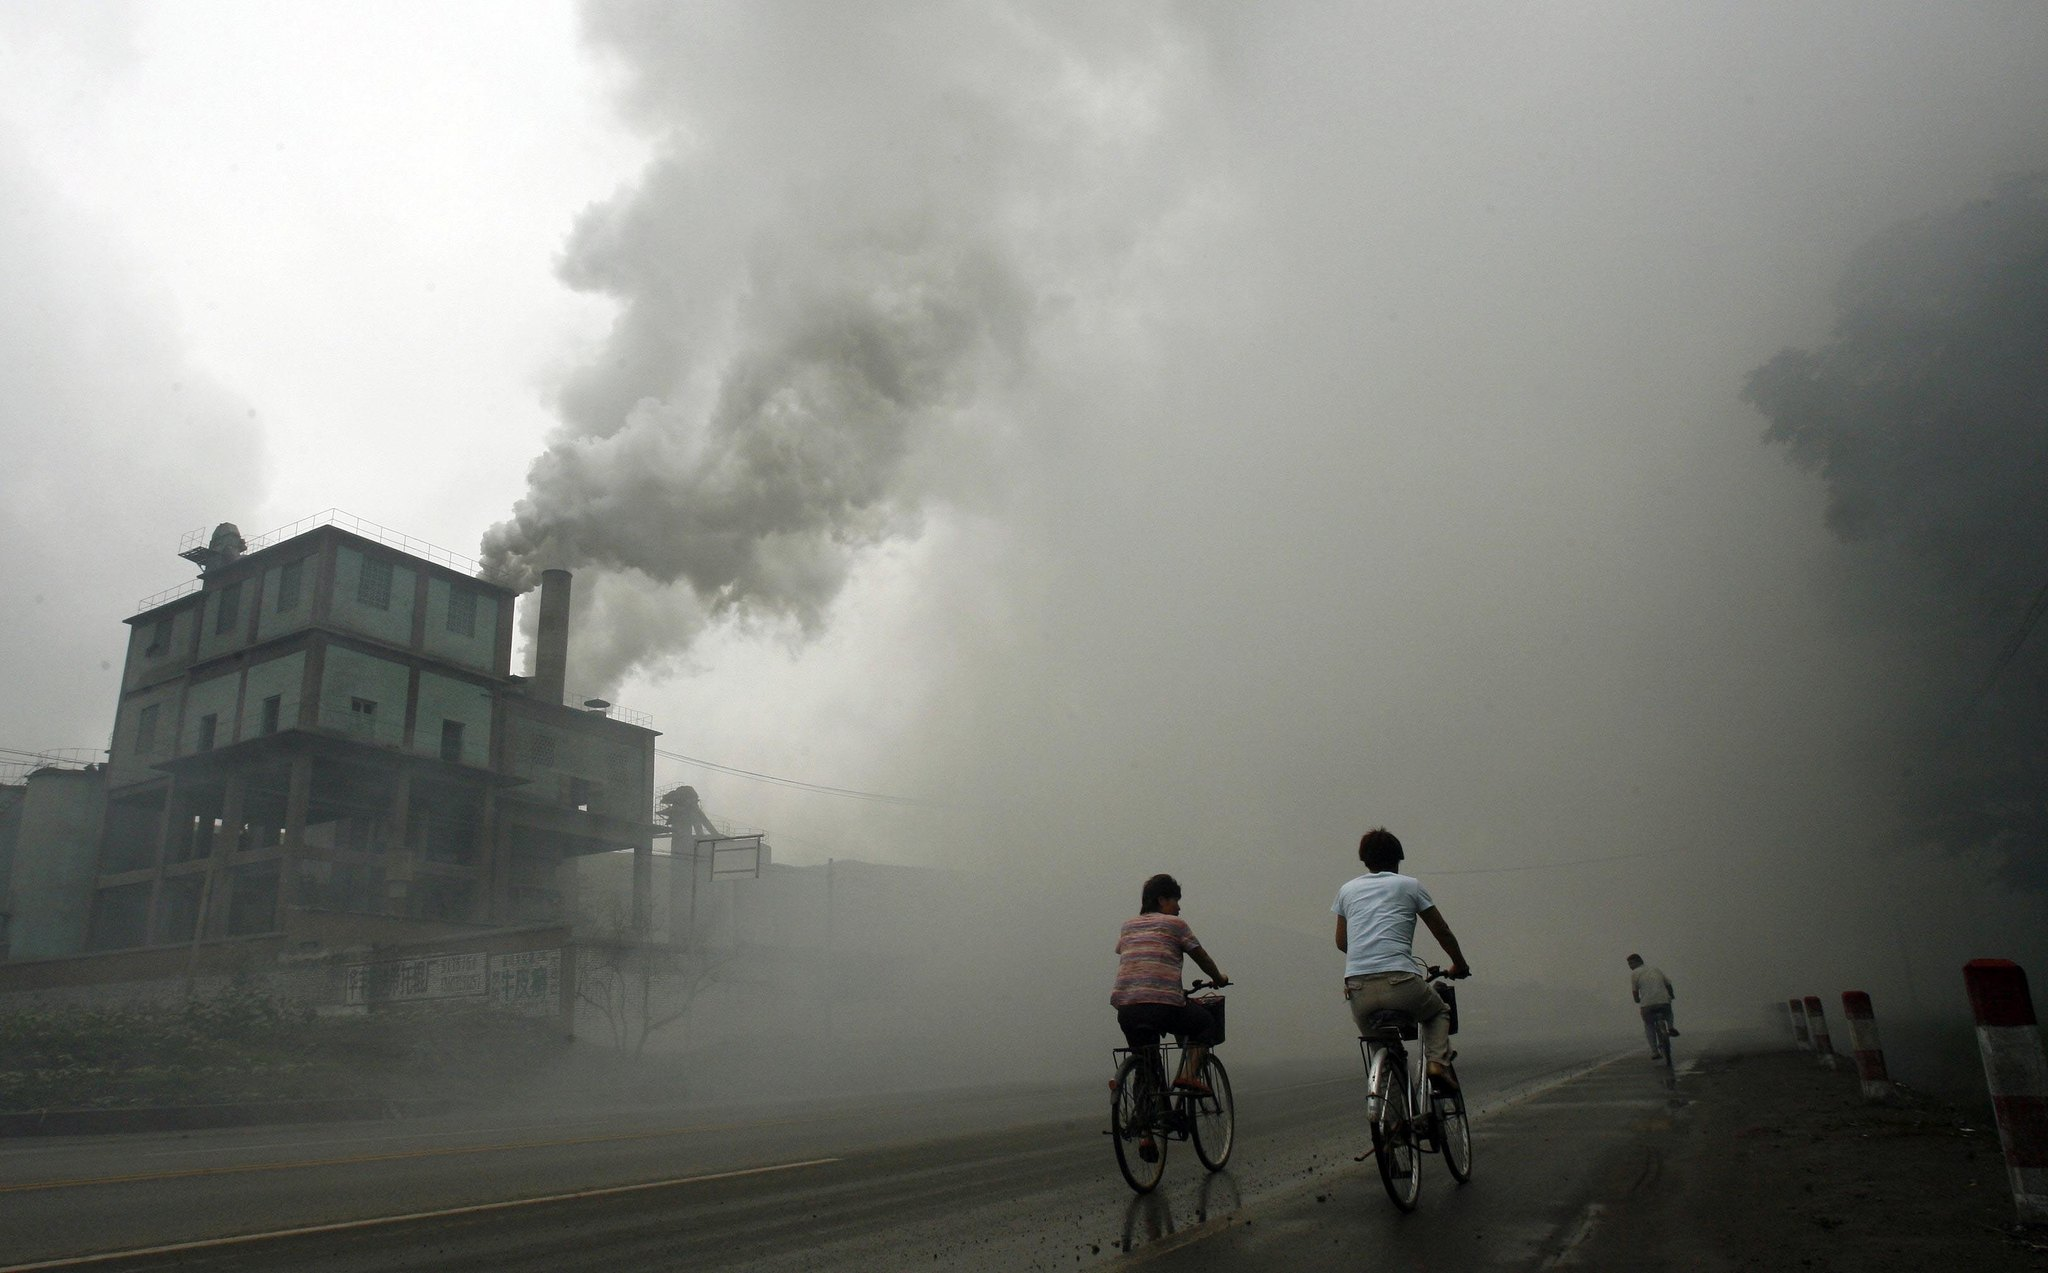 https://storify.com/ucirvine/made-in-china-air-pollution-as-well-as-exports